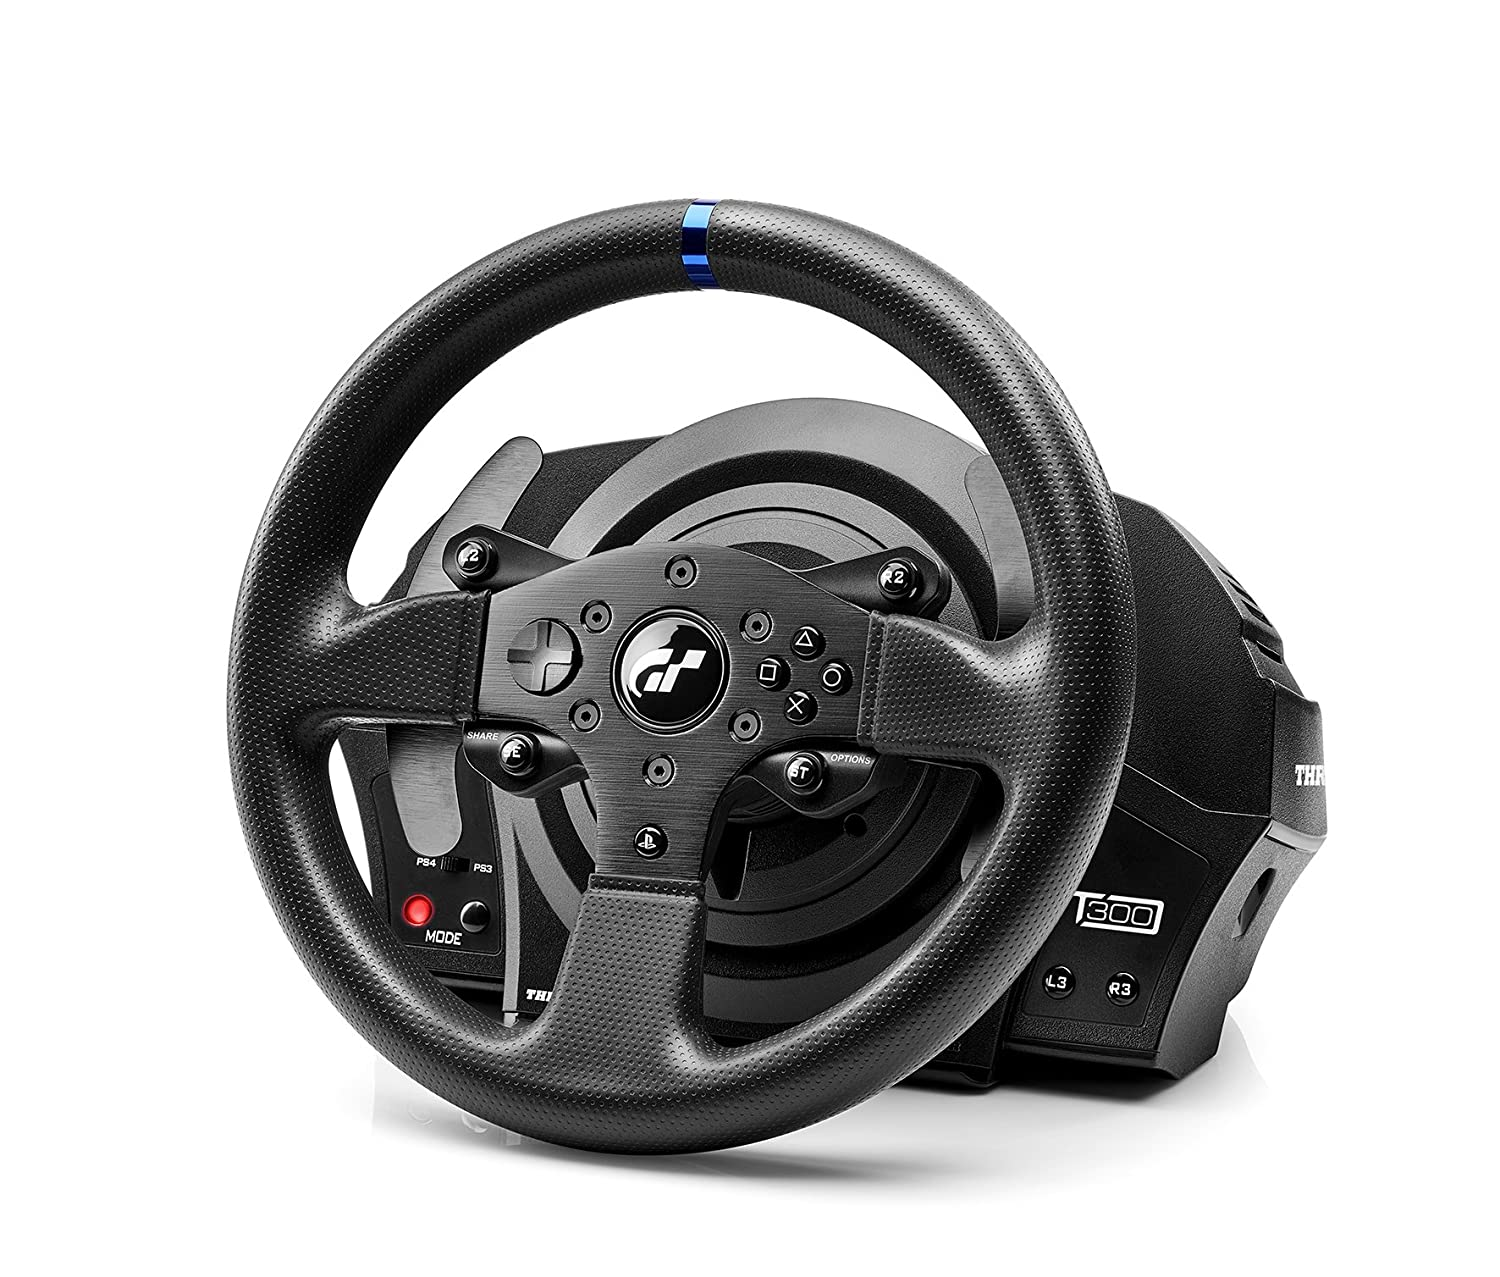 a98ed4e1f57 Thrustmaster T300 RS GT Racing Wheel (PS4/PS3/PC): Amazon.co.uk: PC & Video  Games